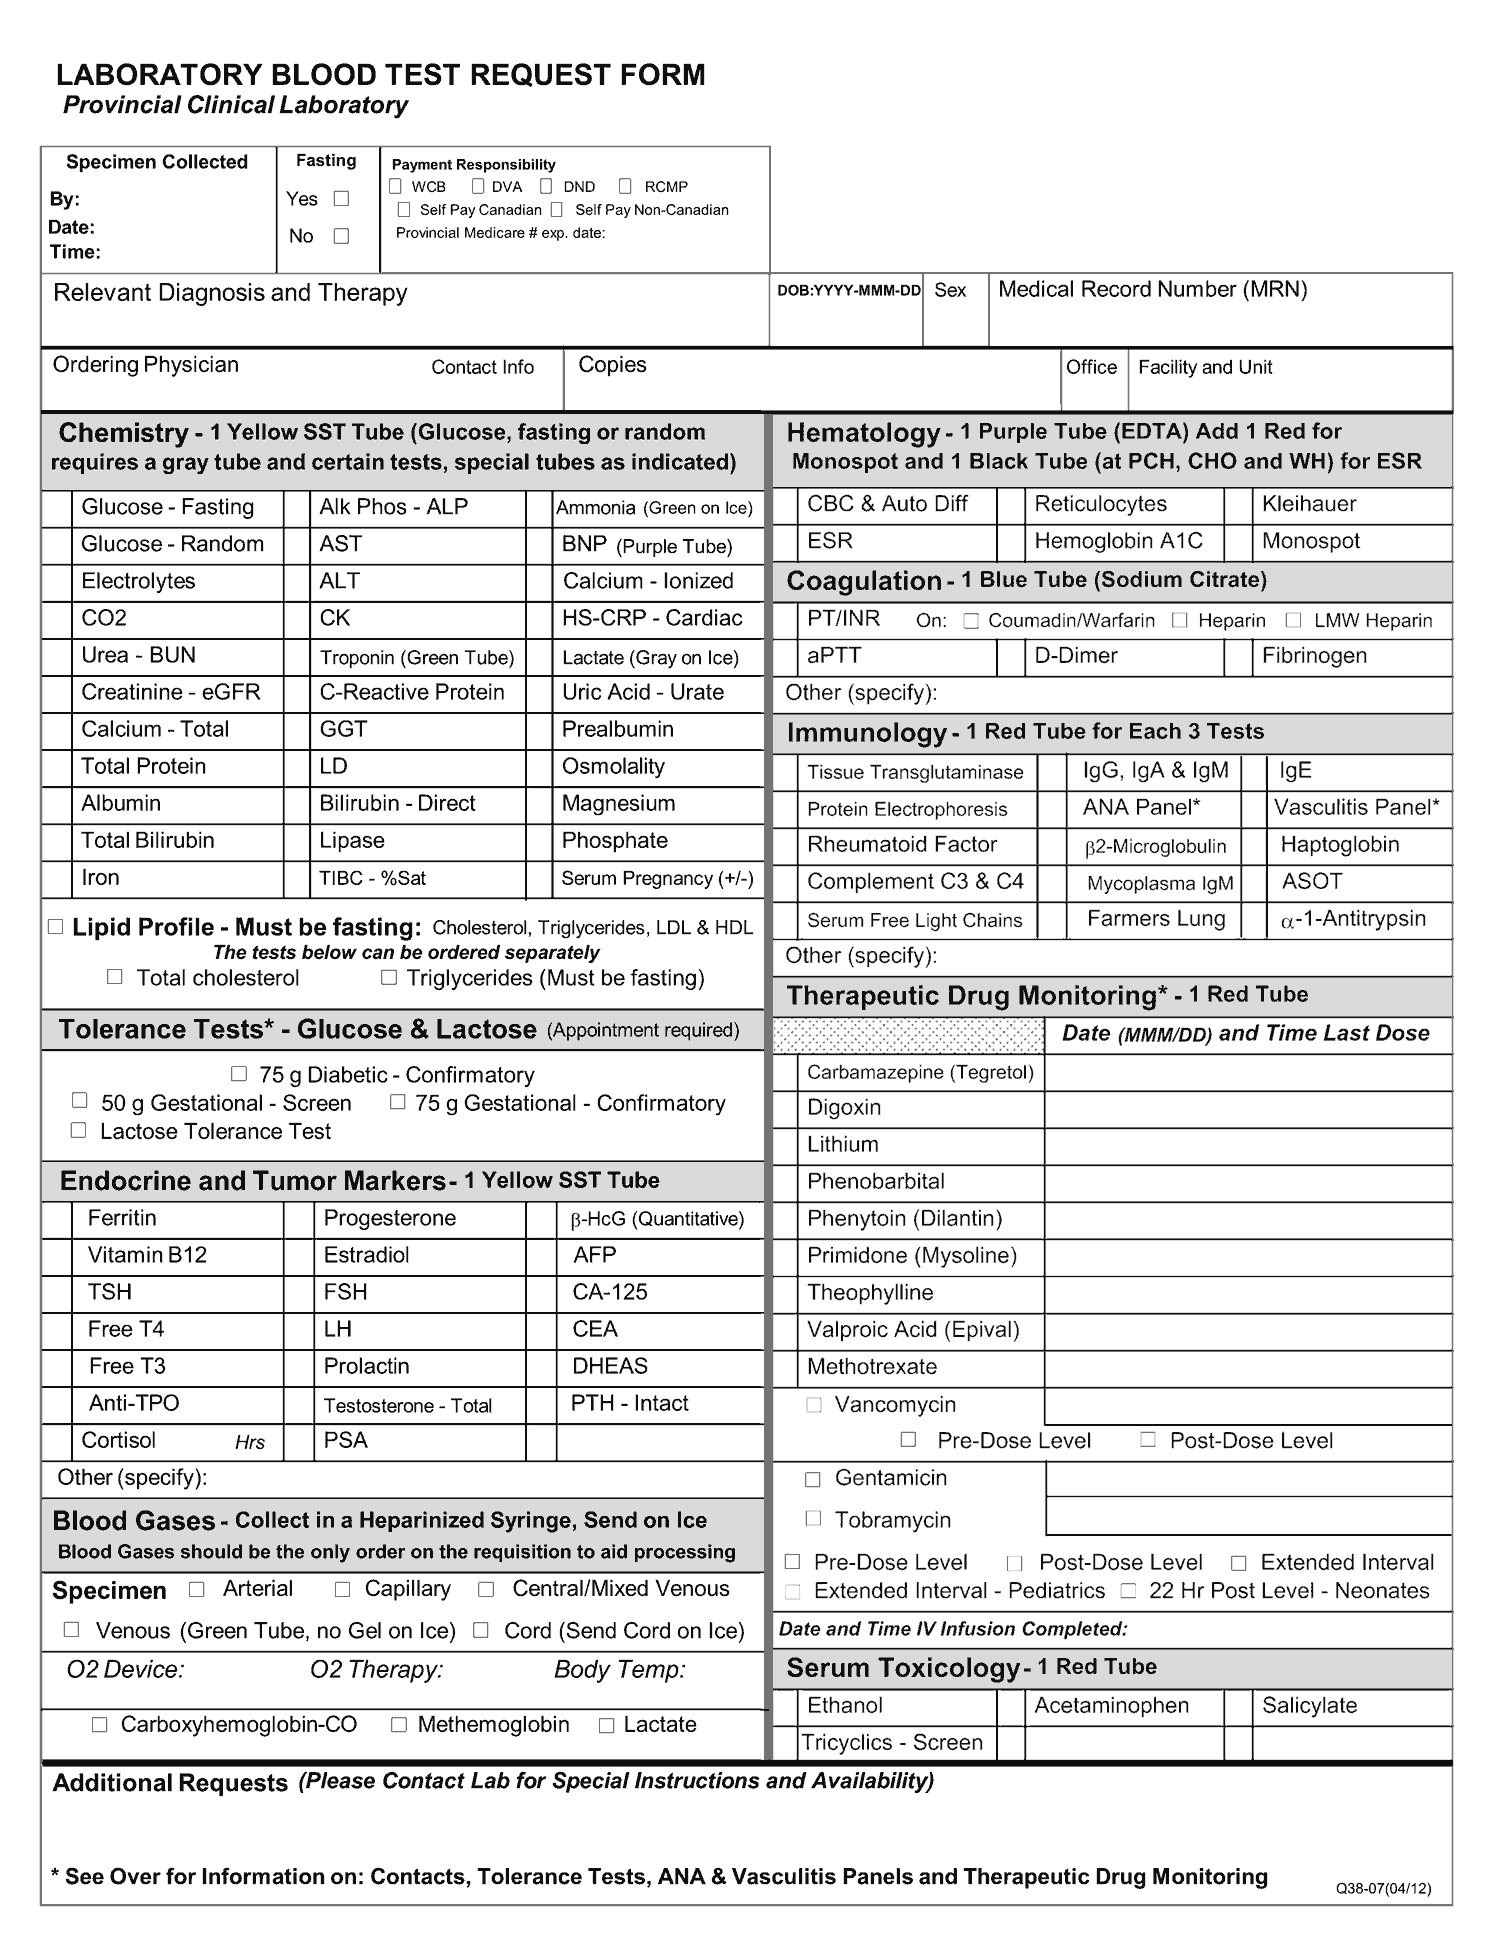 Lab Blood Test request form